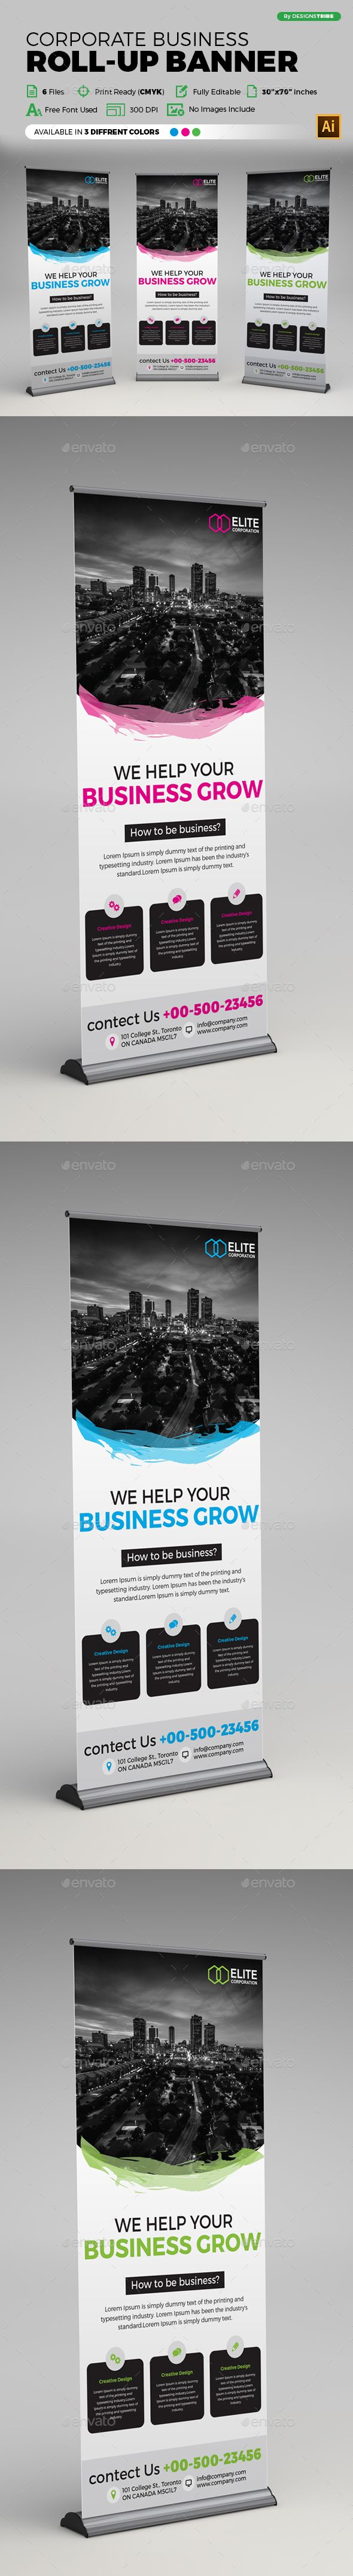 Corporate Business Roll-up Banner | Corporate business, Banners and ...